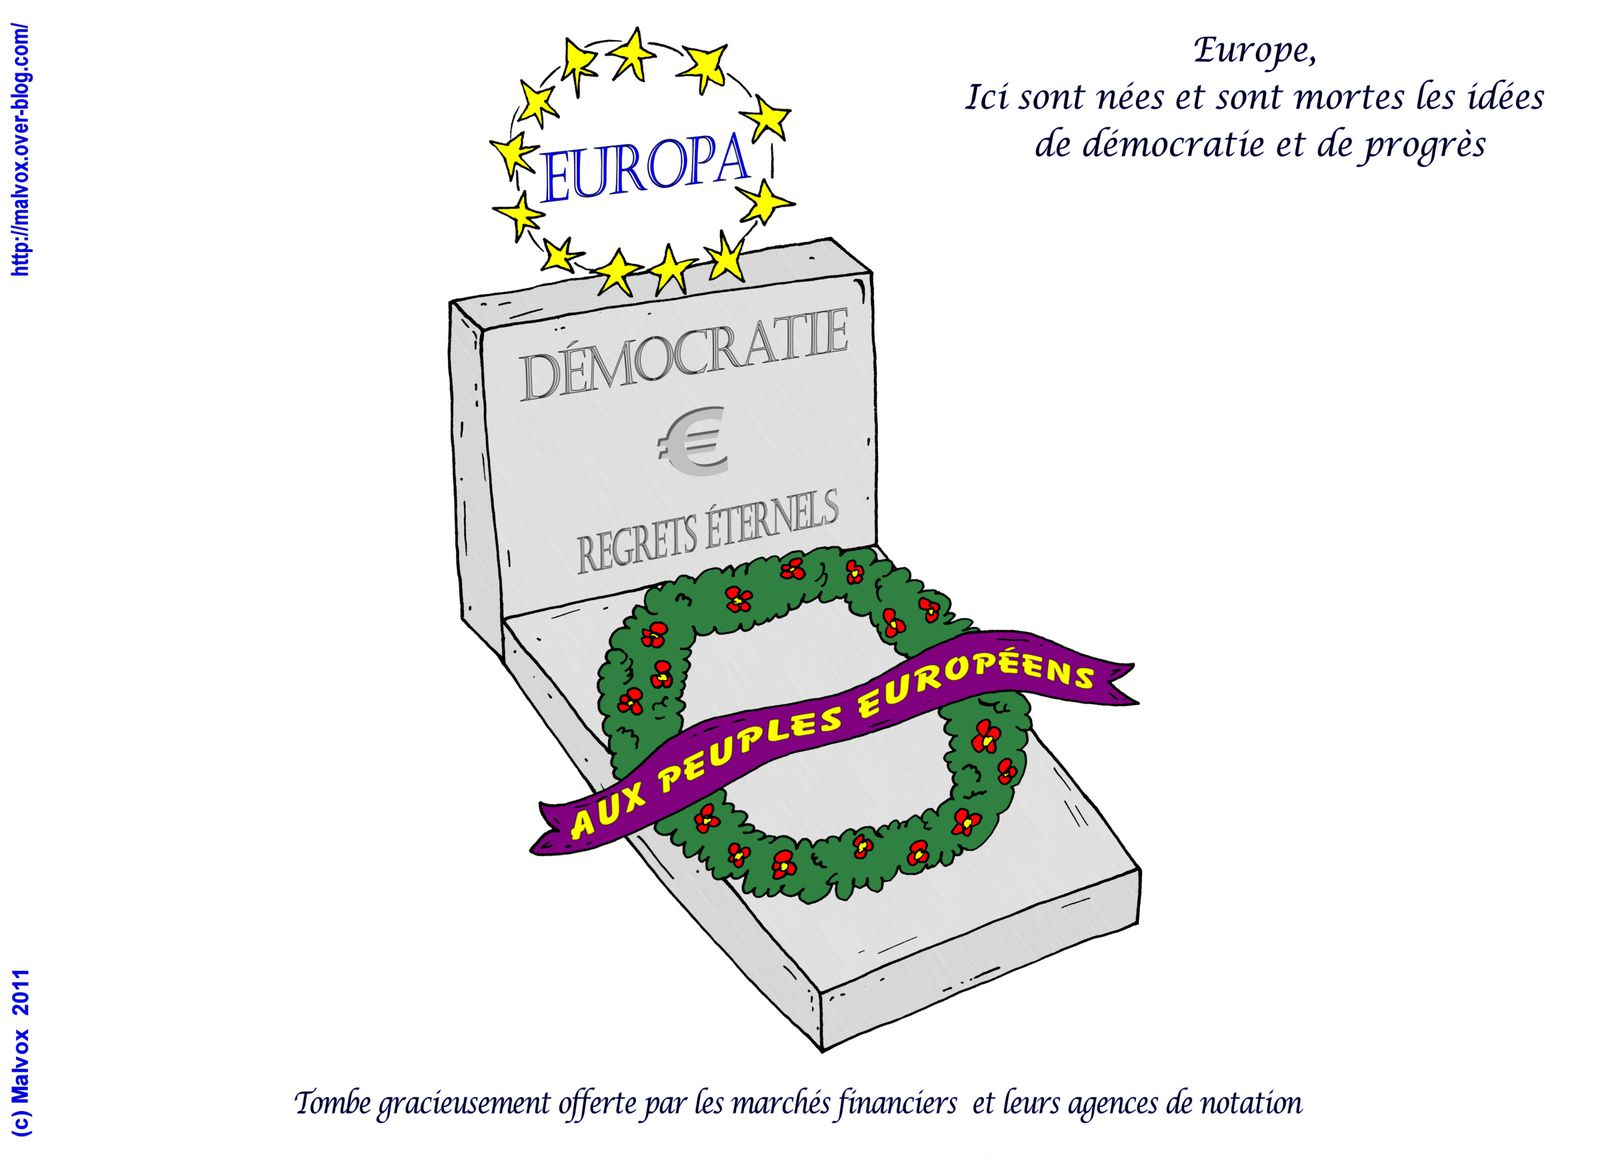 http://a404.idata.over-blog.com/2/59/63/53/europe-democraty-death.jpg